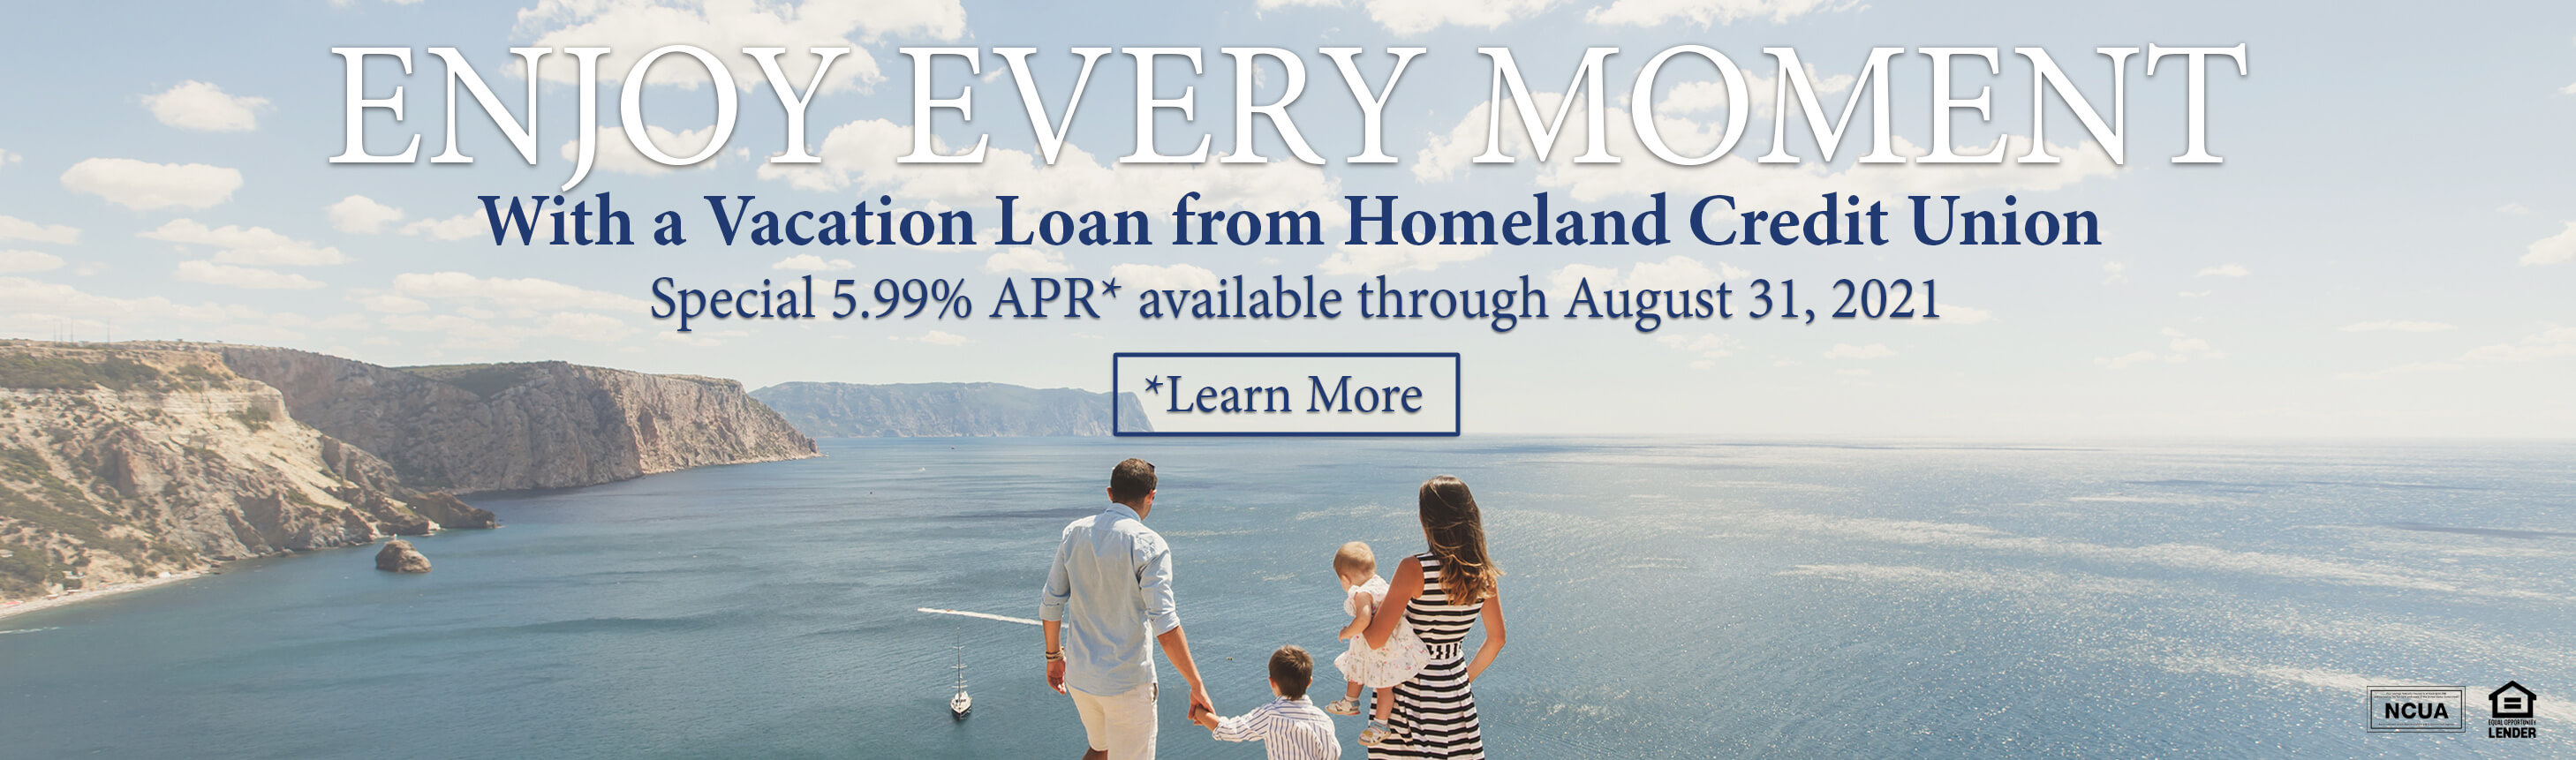 Enjoy every moment with a Vacation Loan from Homeland Credit Union. Special 5.99% APR* available through August 31, 2021. *Annual Percentage Rate. All loans subject to normal underwriting policies and approvals. Maximum loan term 12 months. Promotion subject to change or cancellation without notice. Promotion effective 6/1/2021 through 8/31/2021.